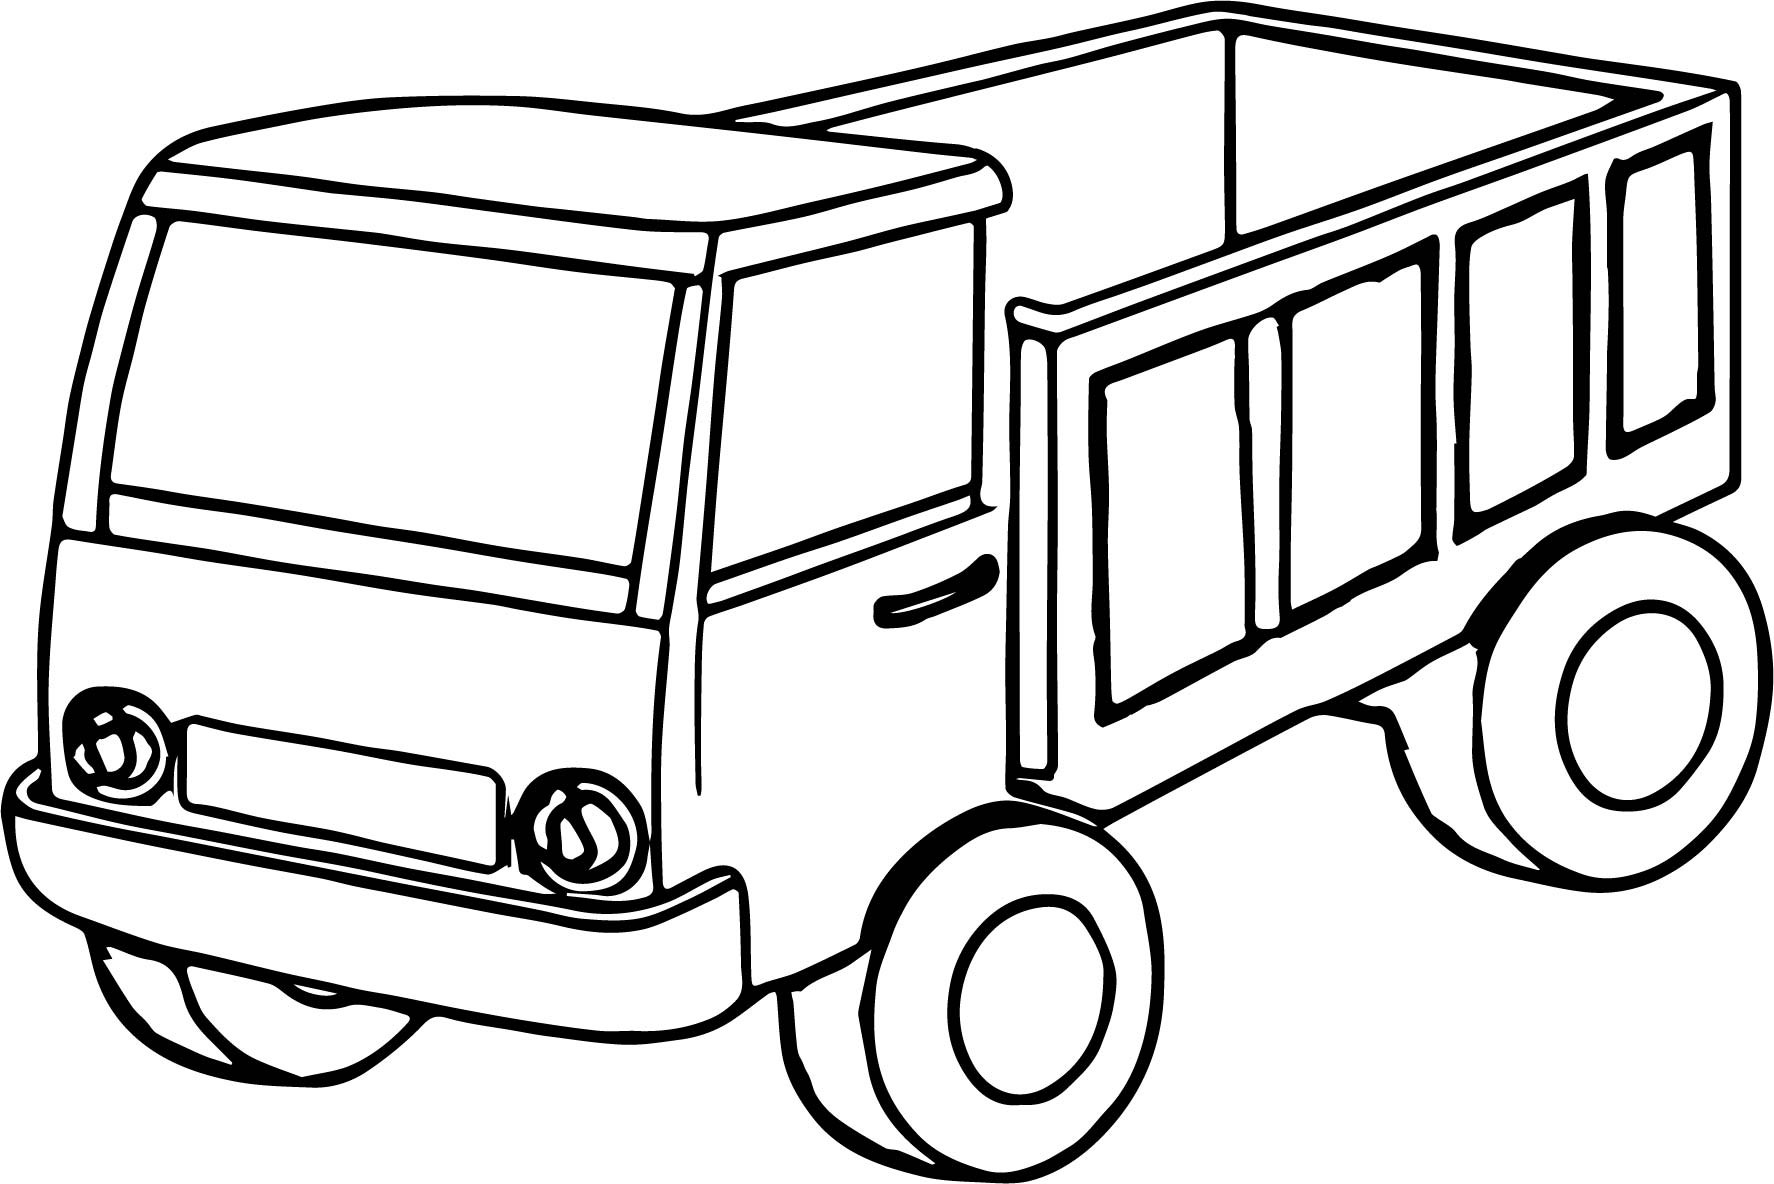 Trucks Coloring Pages For Kids  Kids Truck Coloring Page